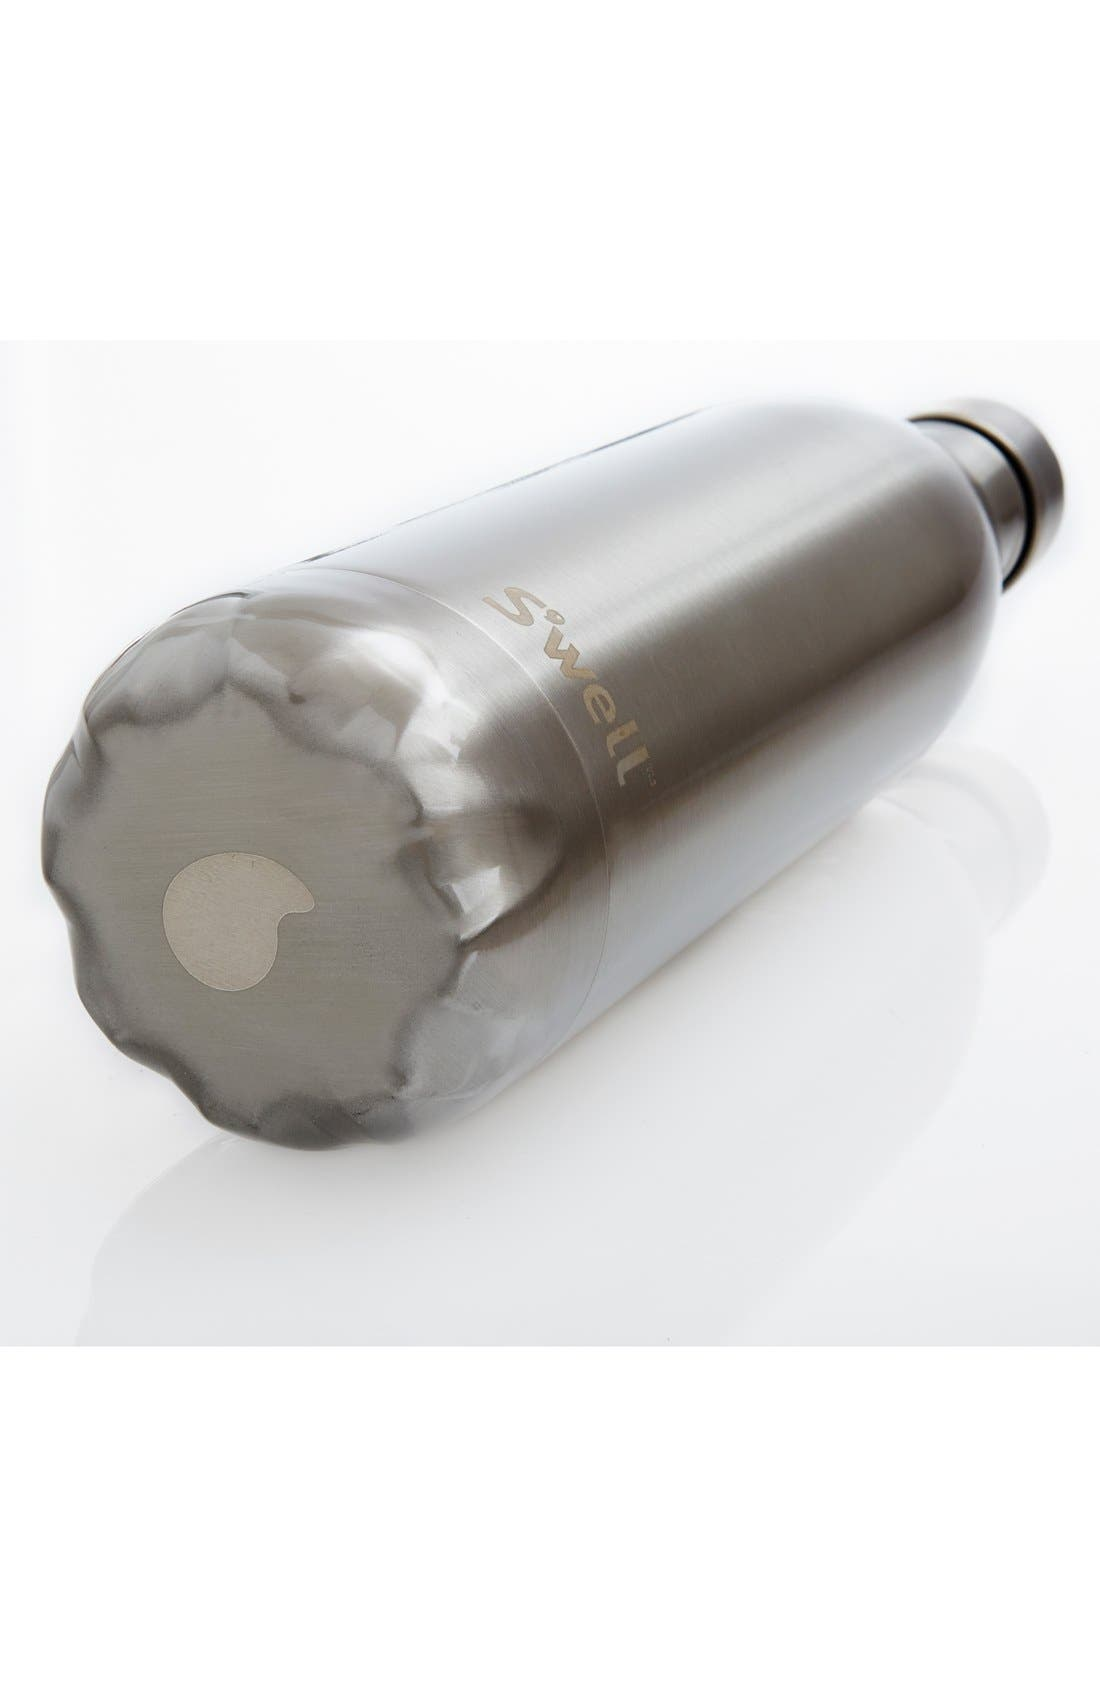 'Silver Lining' Stainless Steel Water Bottle,                             Alternate thumbnail 3, color,                             Silver